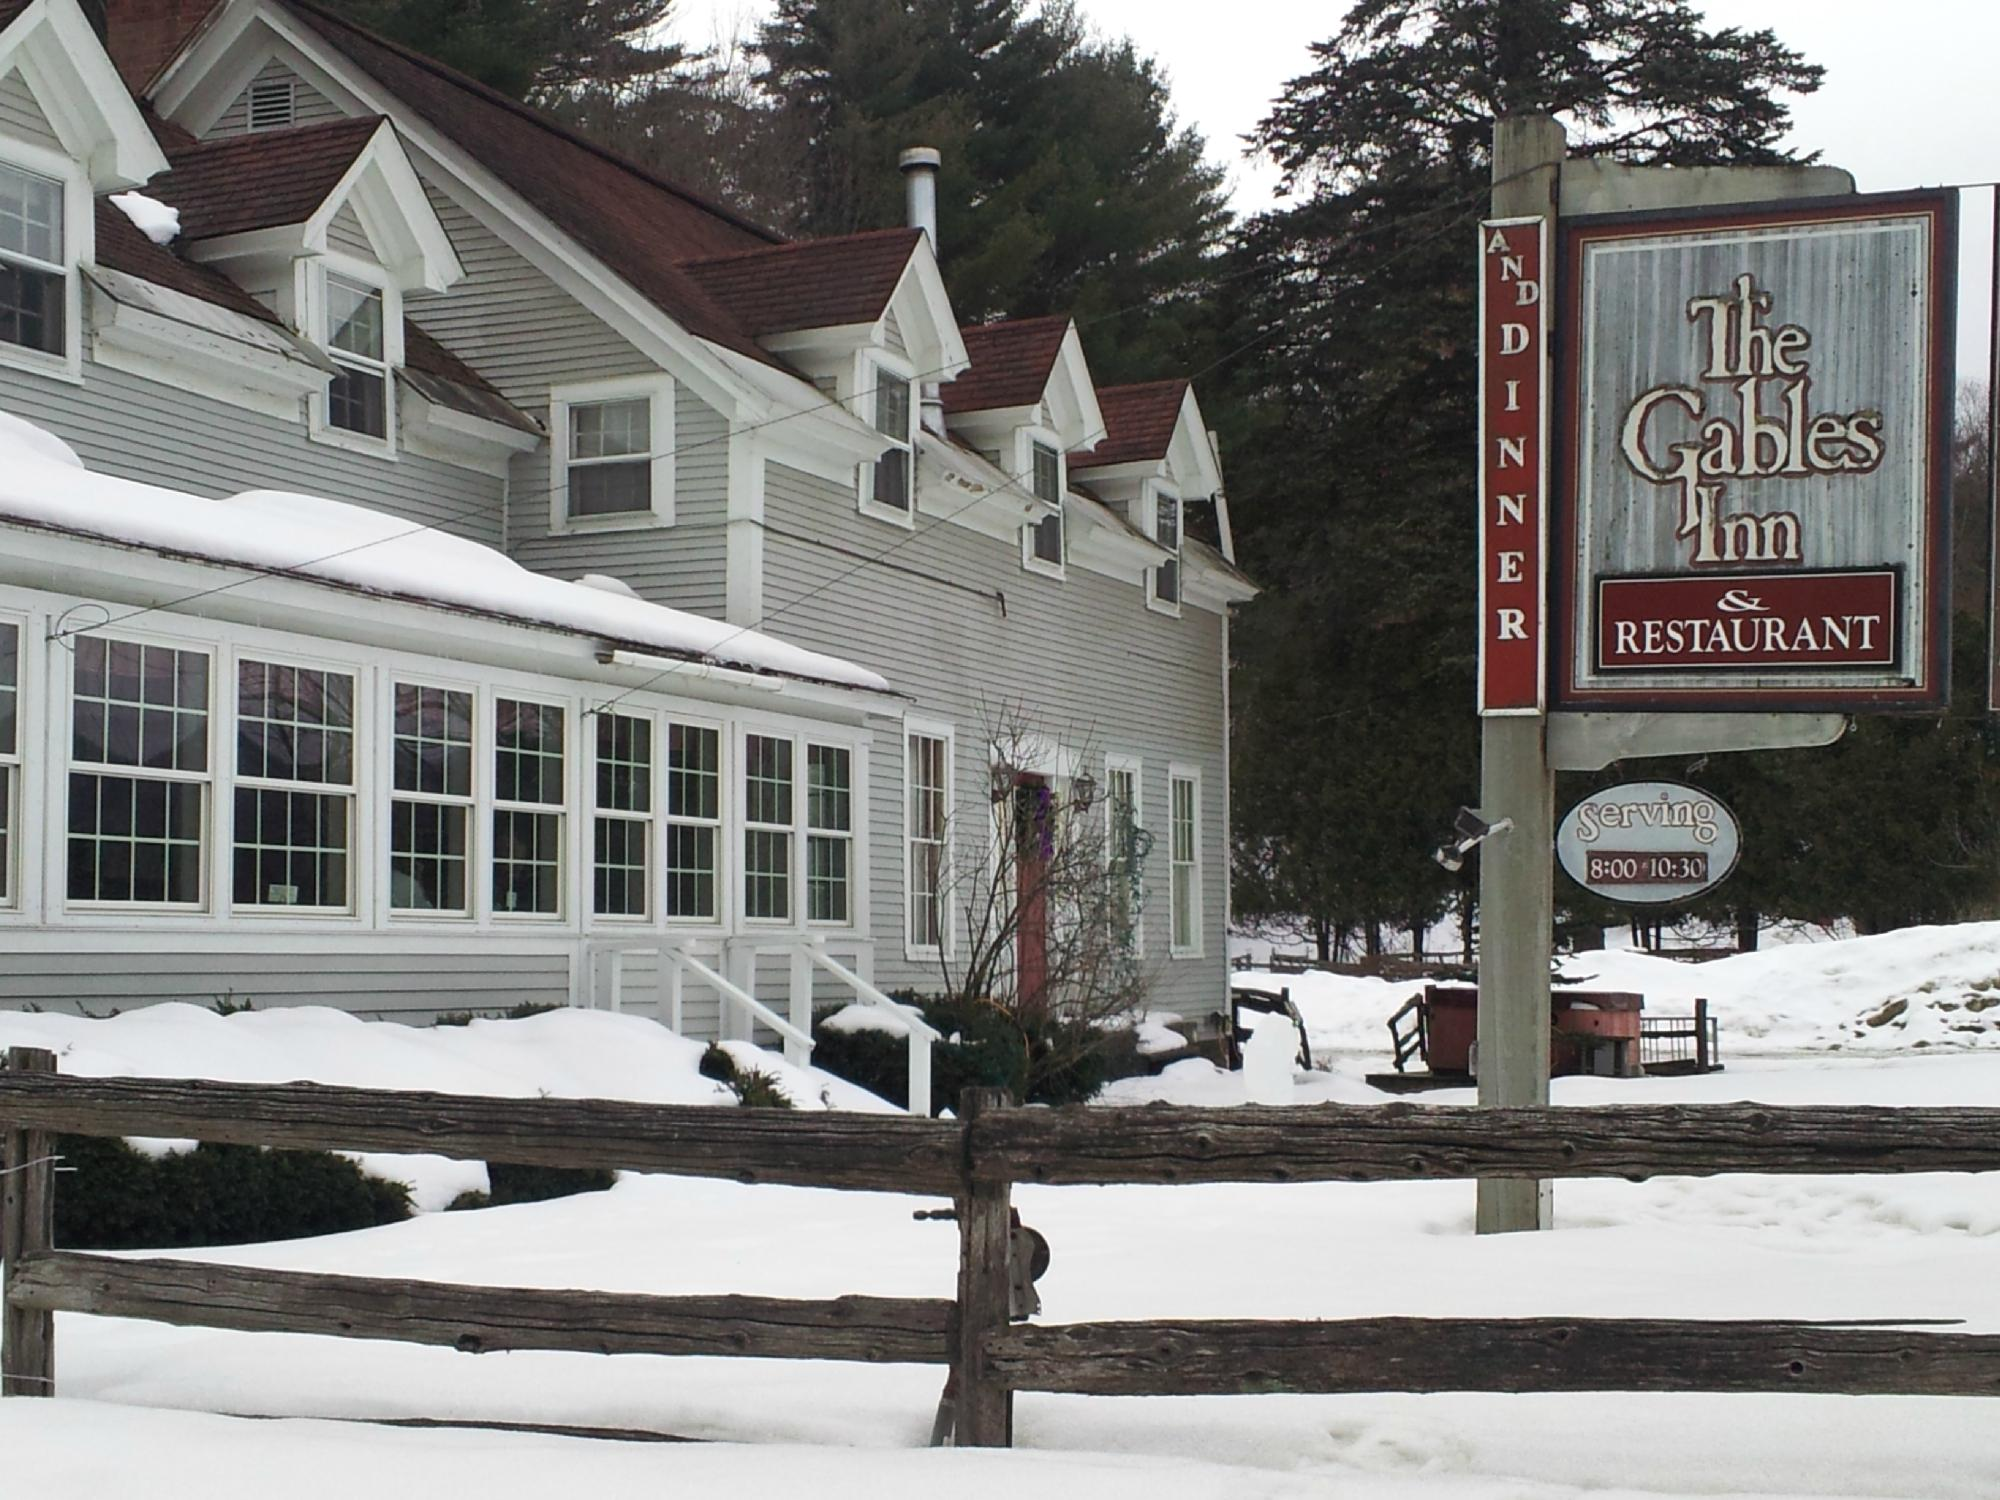 The Gables Inn